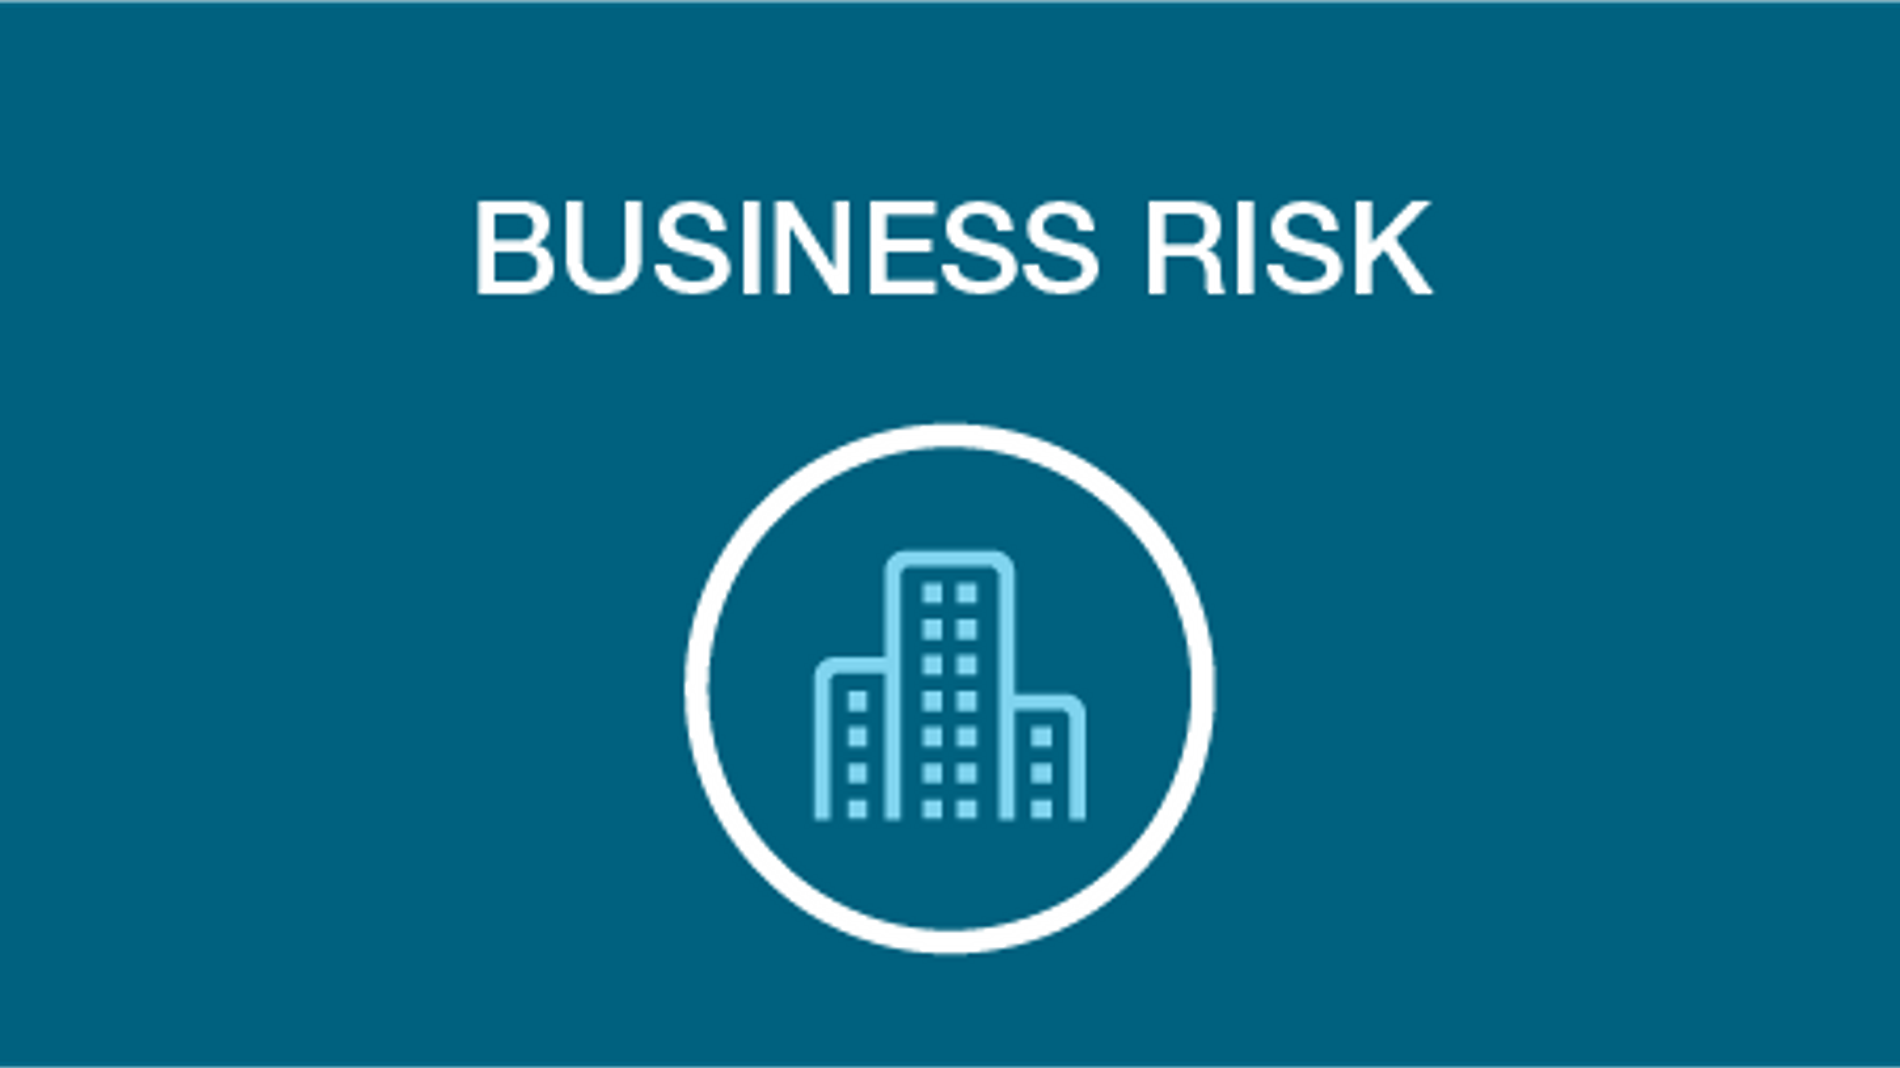 Business risk icon